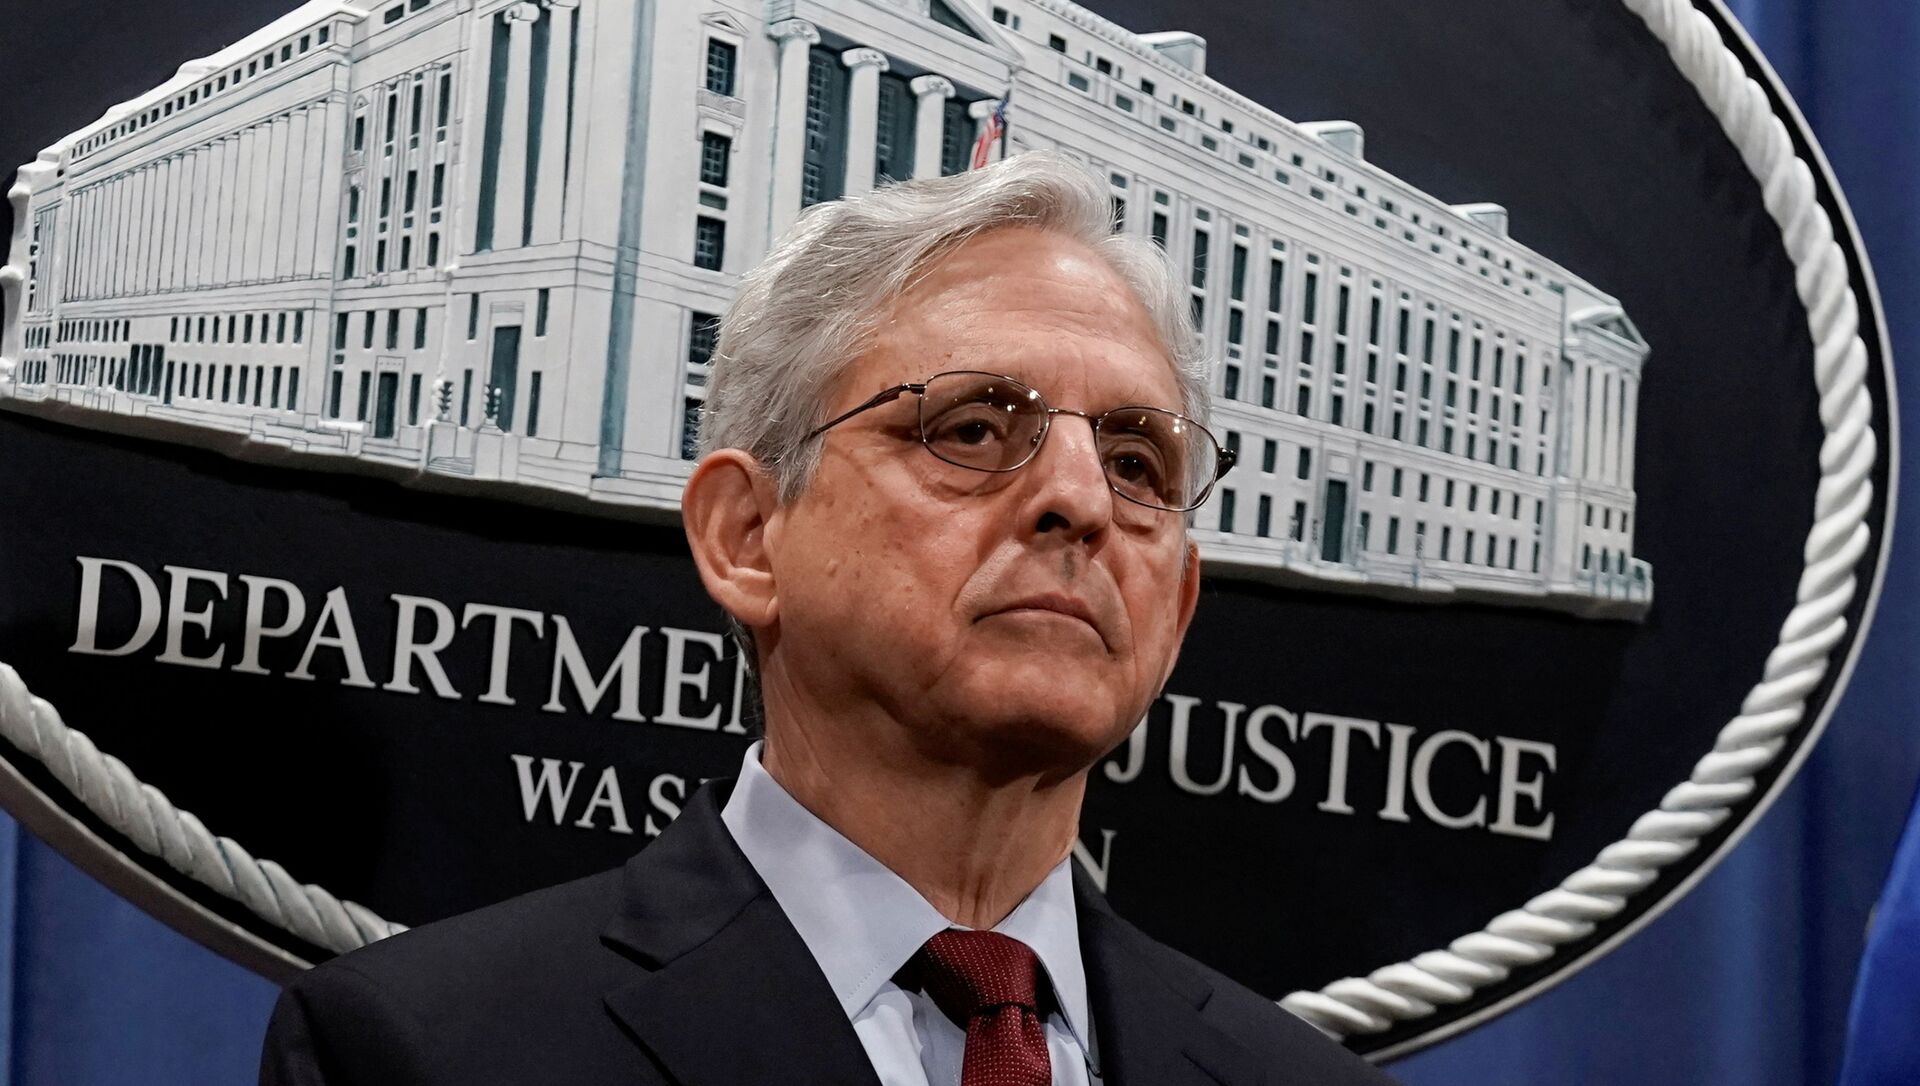 U.S. Attorney General Merrick Garland announces that the Justice Department will file a lawsuit challenging a Georgia election law, in Washington - Sputnik International, 1920, 30.07.2021